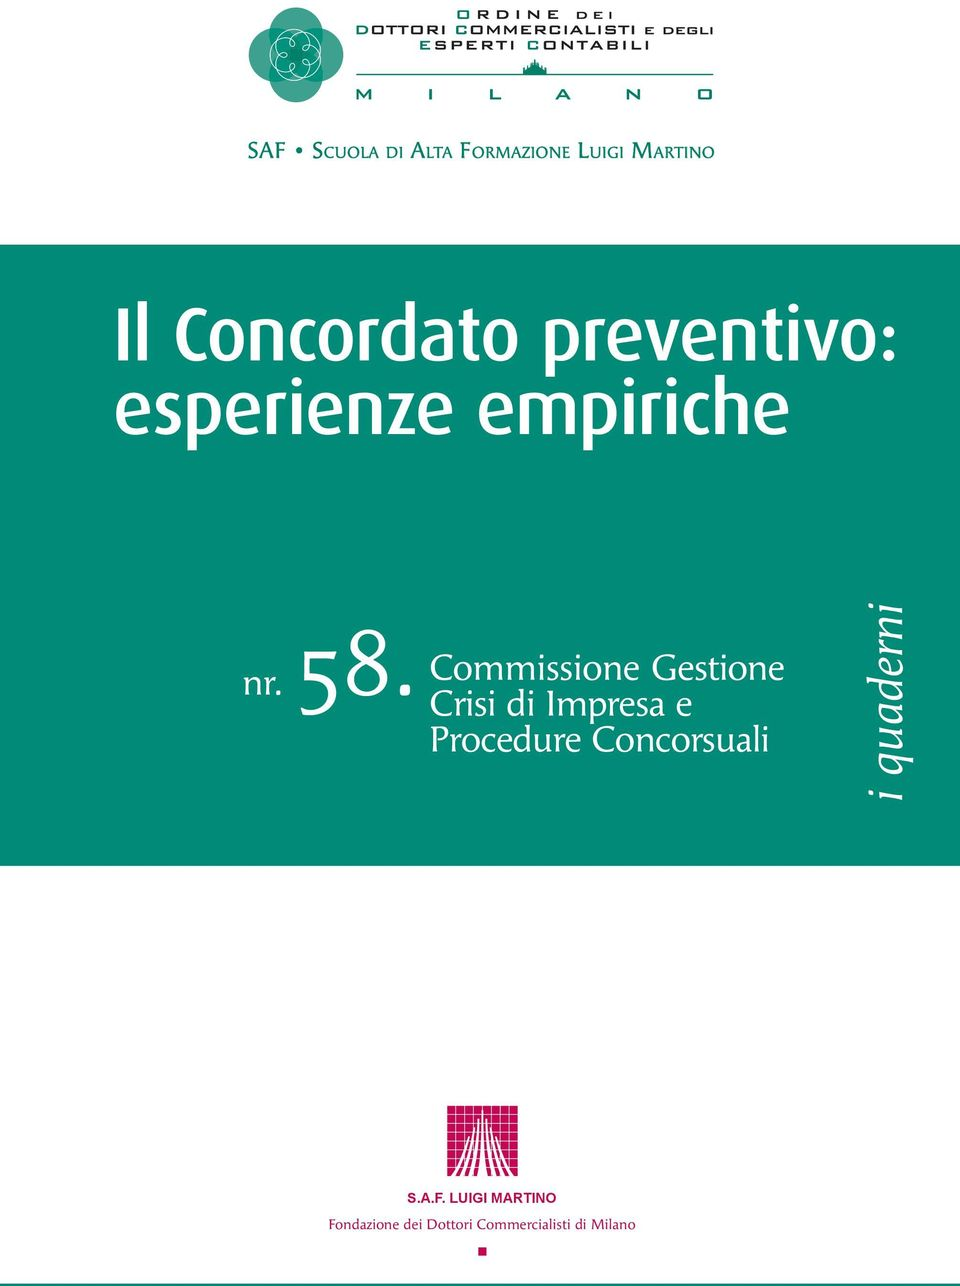 Commissione Gestione Crisi di Impresa e Procedure